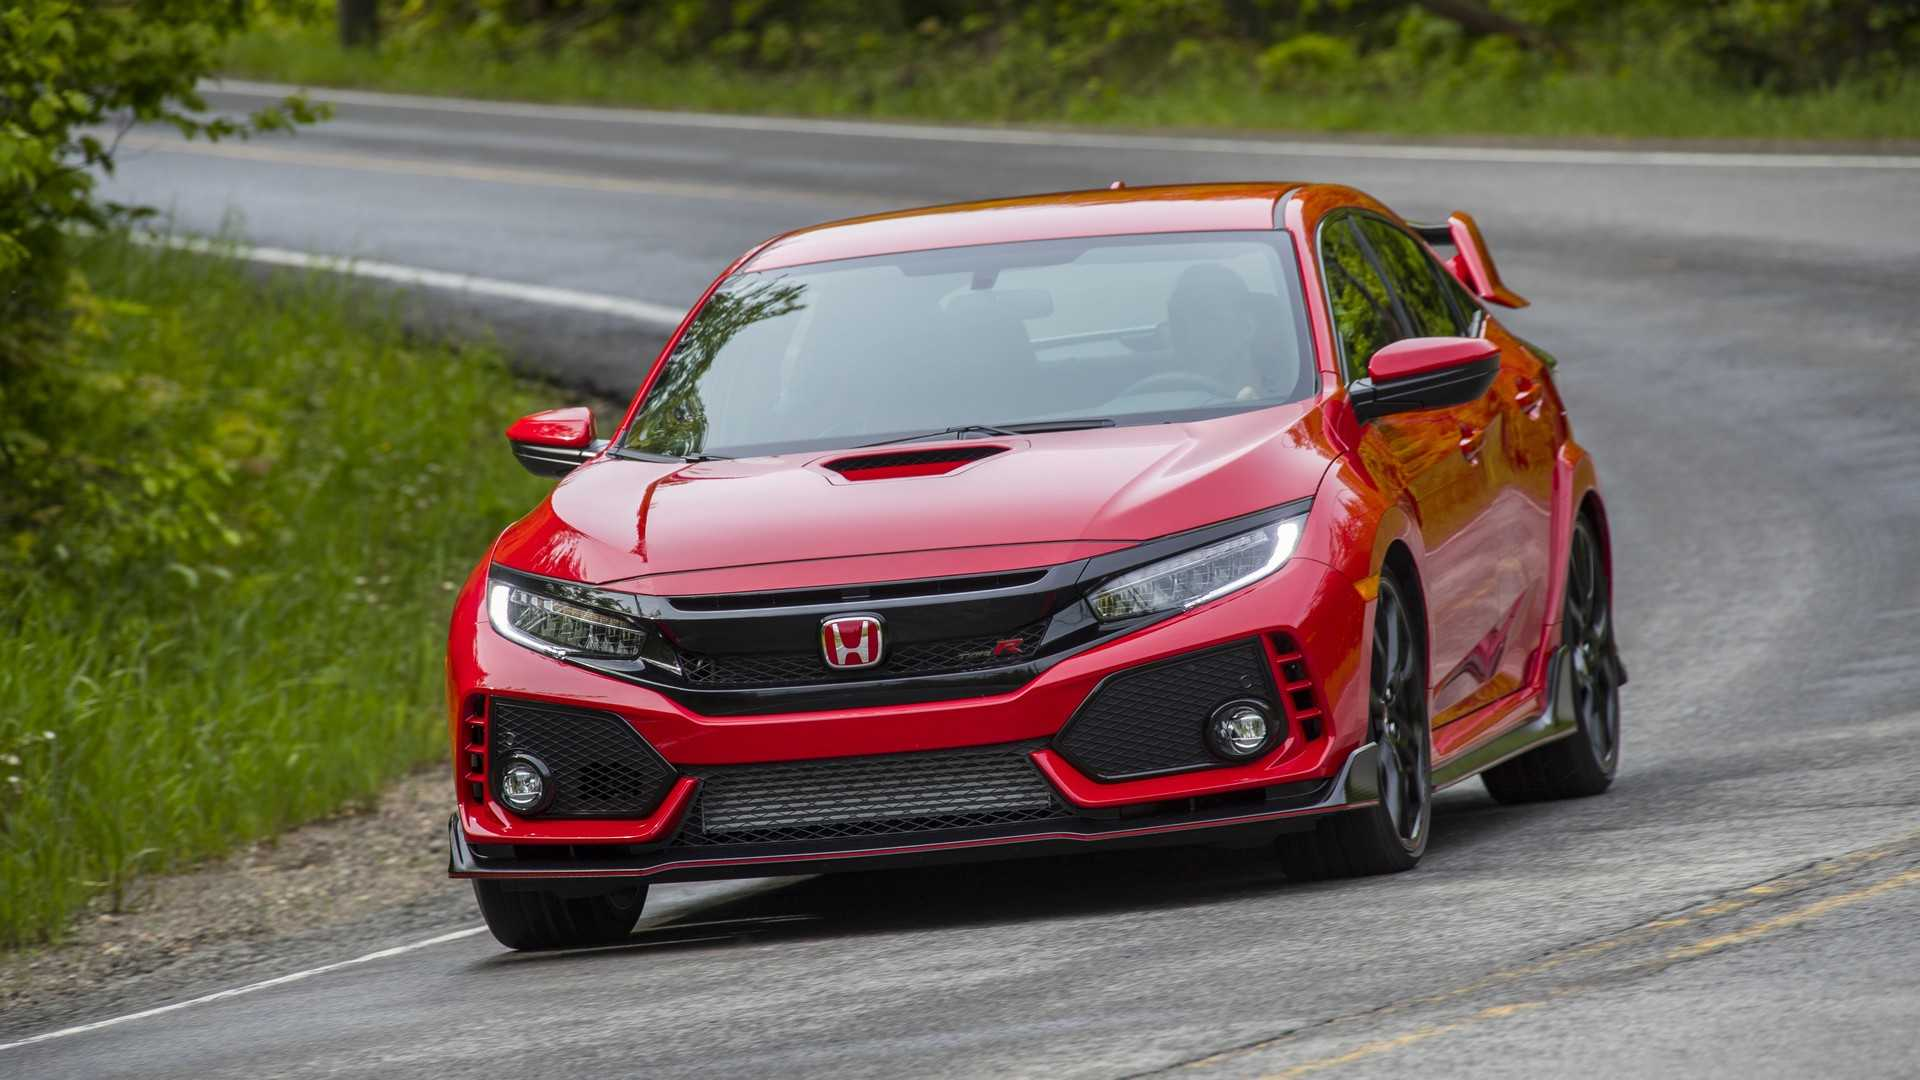 43 All New 2019 Honda Type R Style